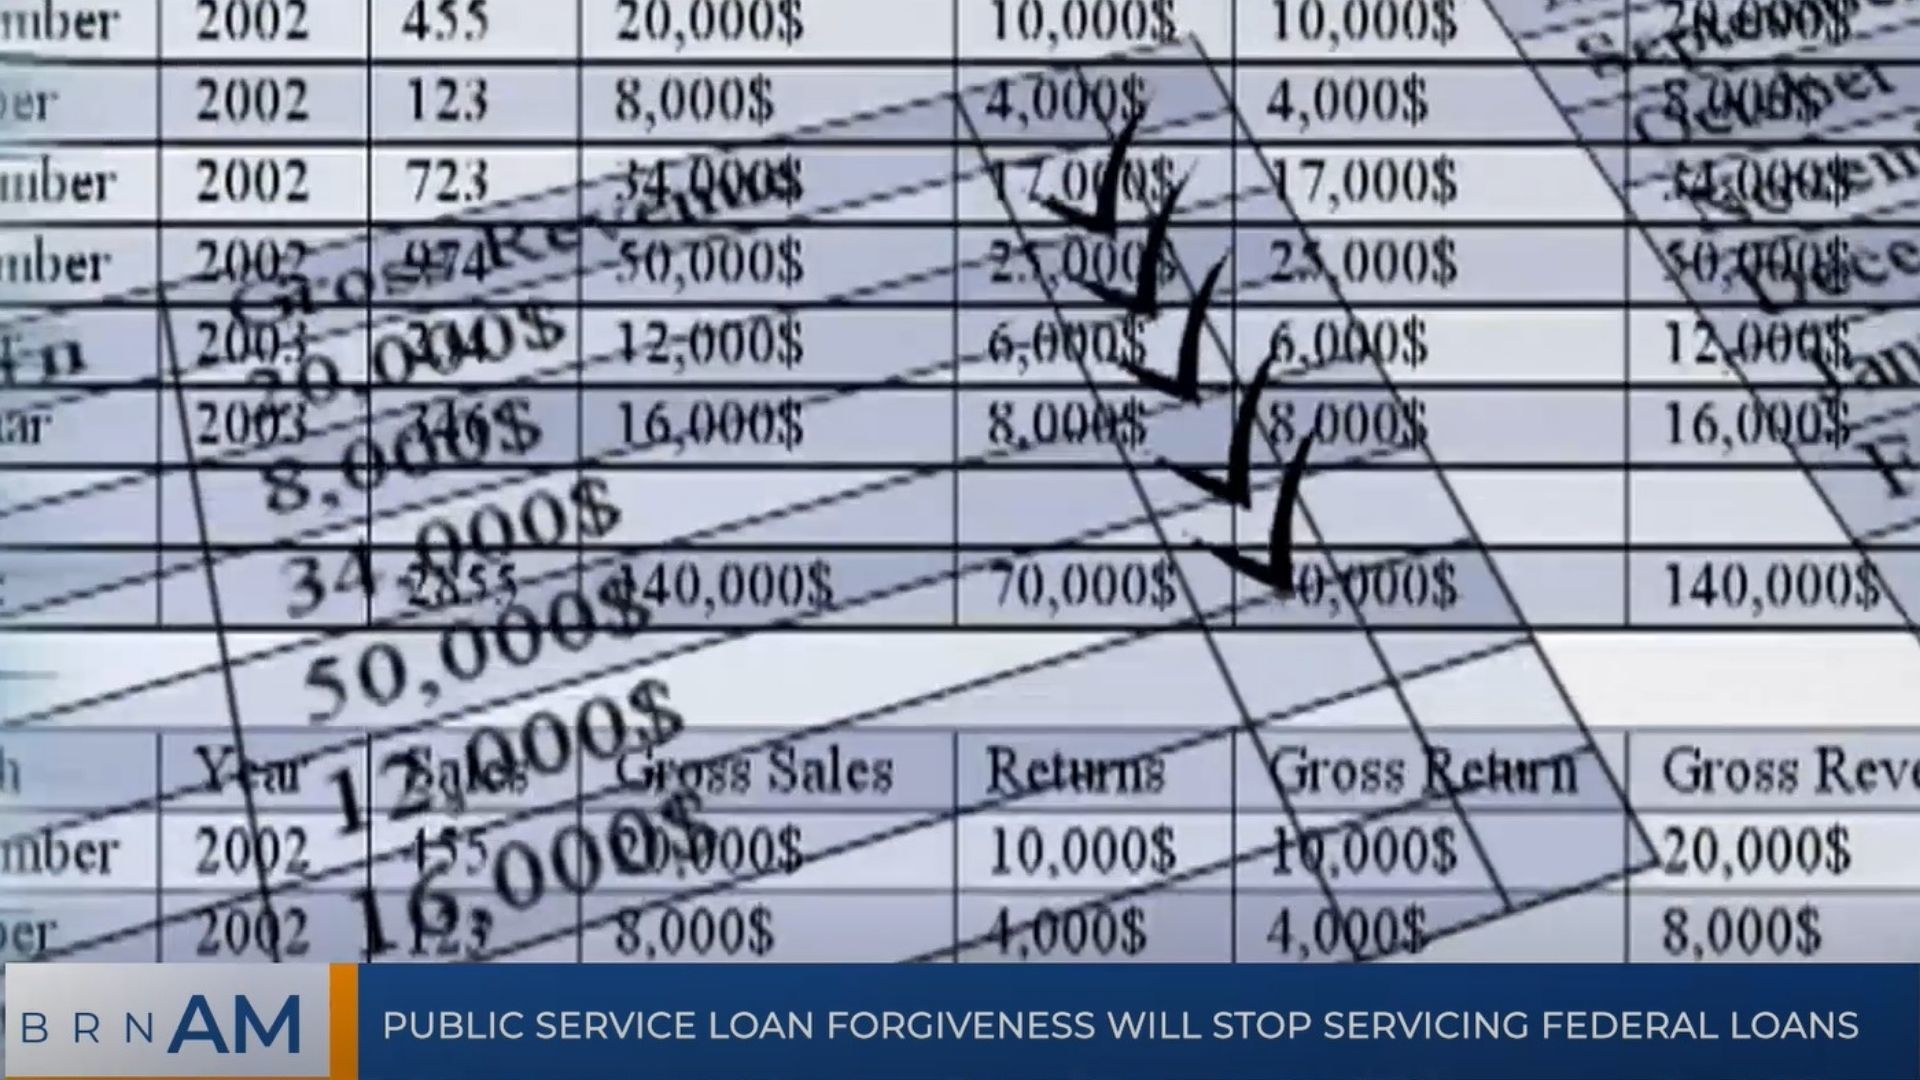 BRN AM | Student loan giant will stop servicing federal loans